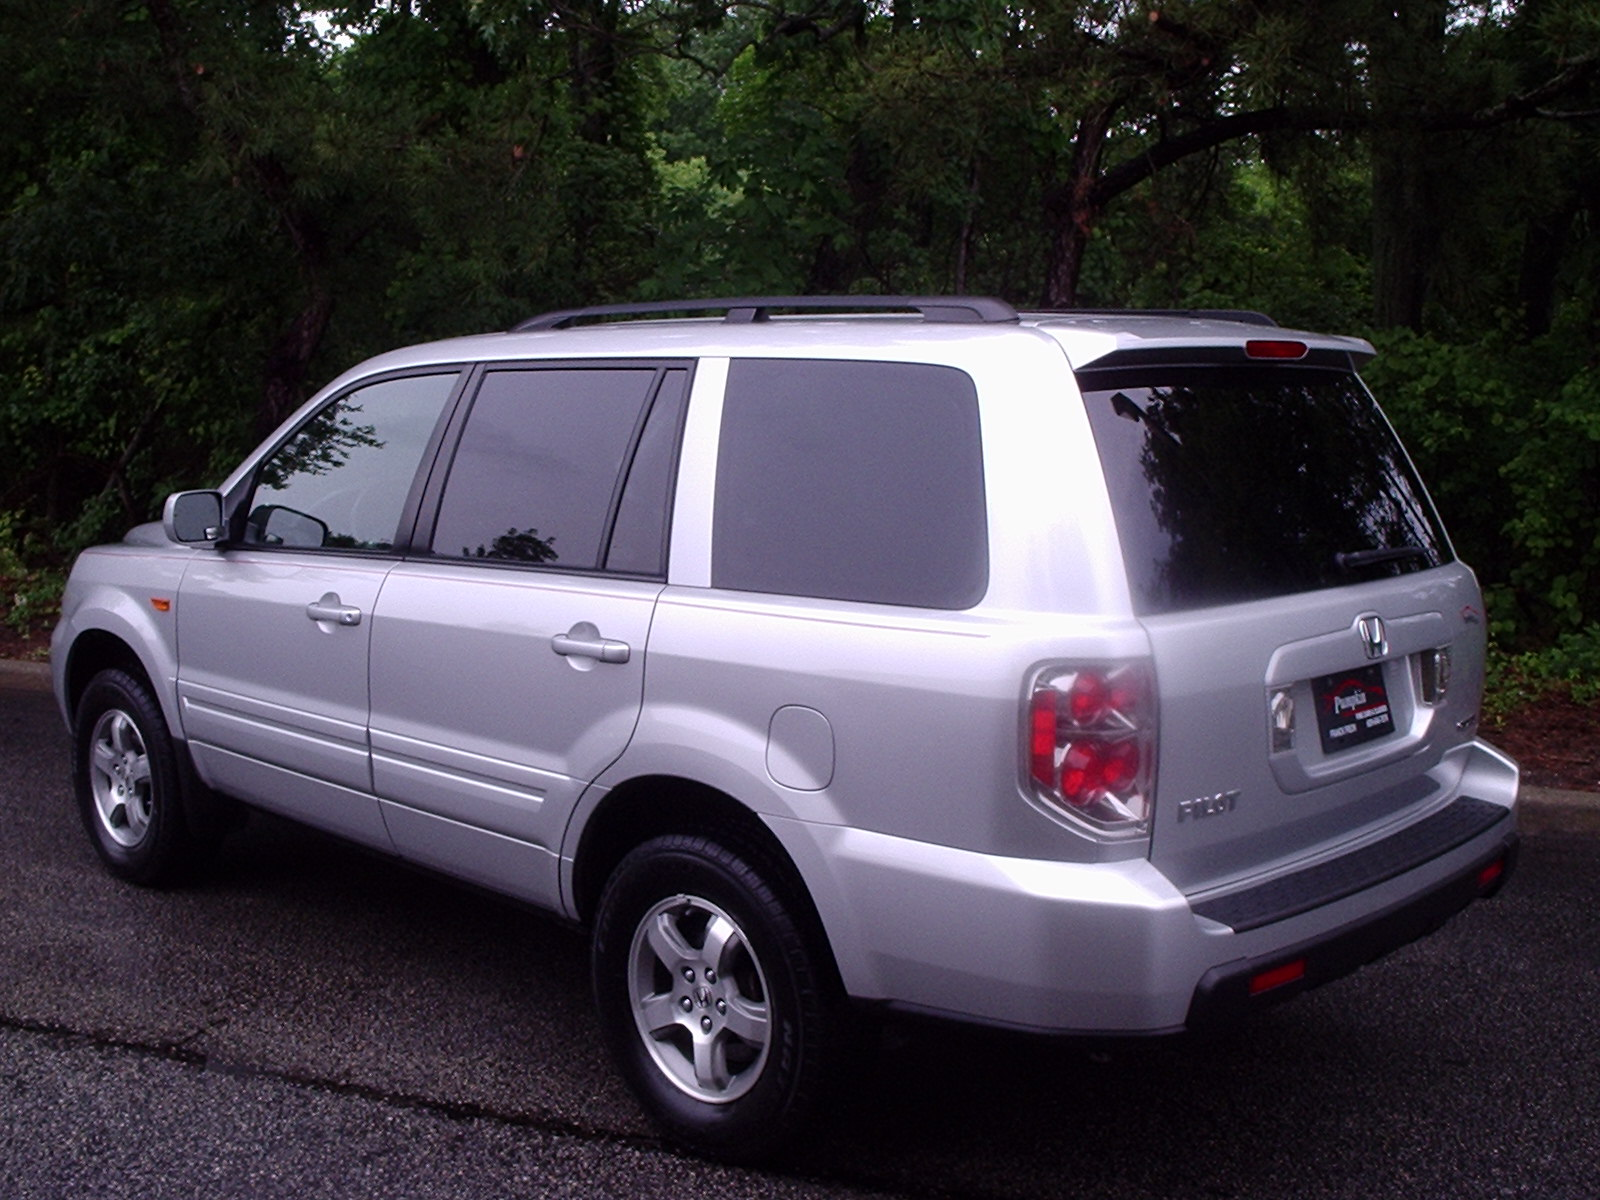 honda pilot  flashing  honda pilot  flashing  vsa lights problem page